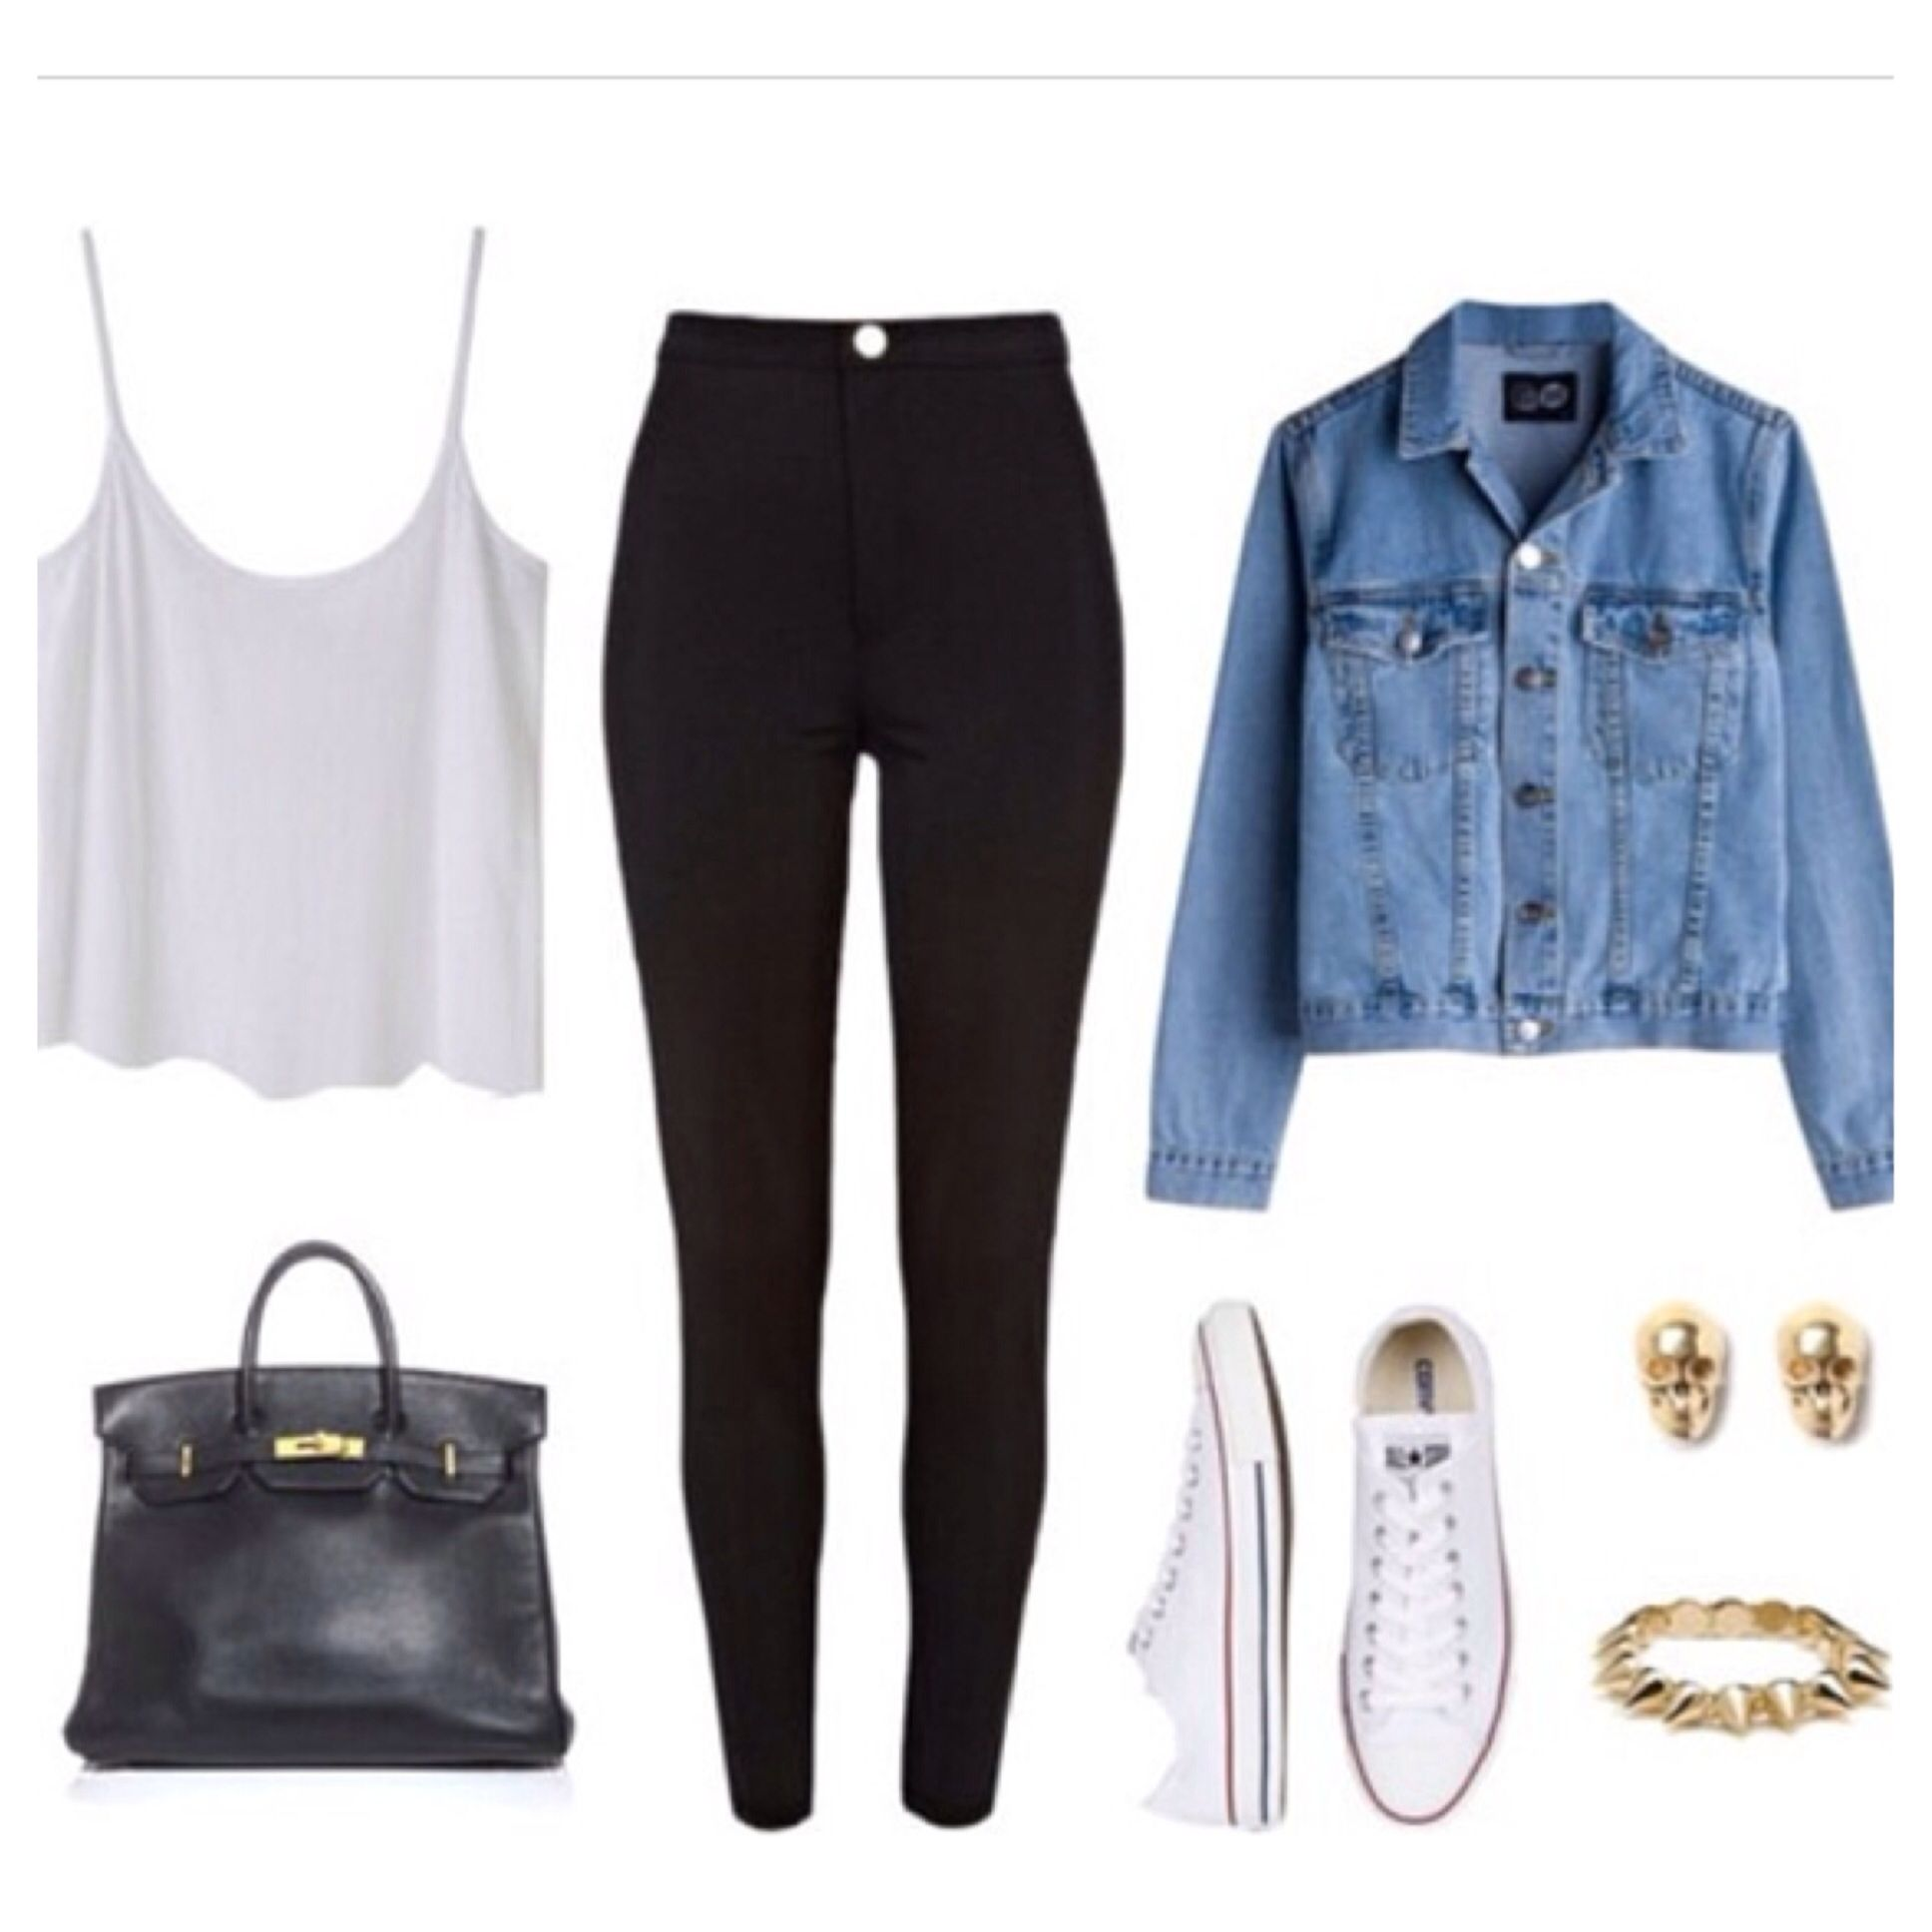 This is such a cute outfit | fashion | Pinterest | School outfits Clothes and Clothing